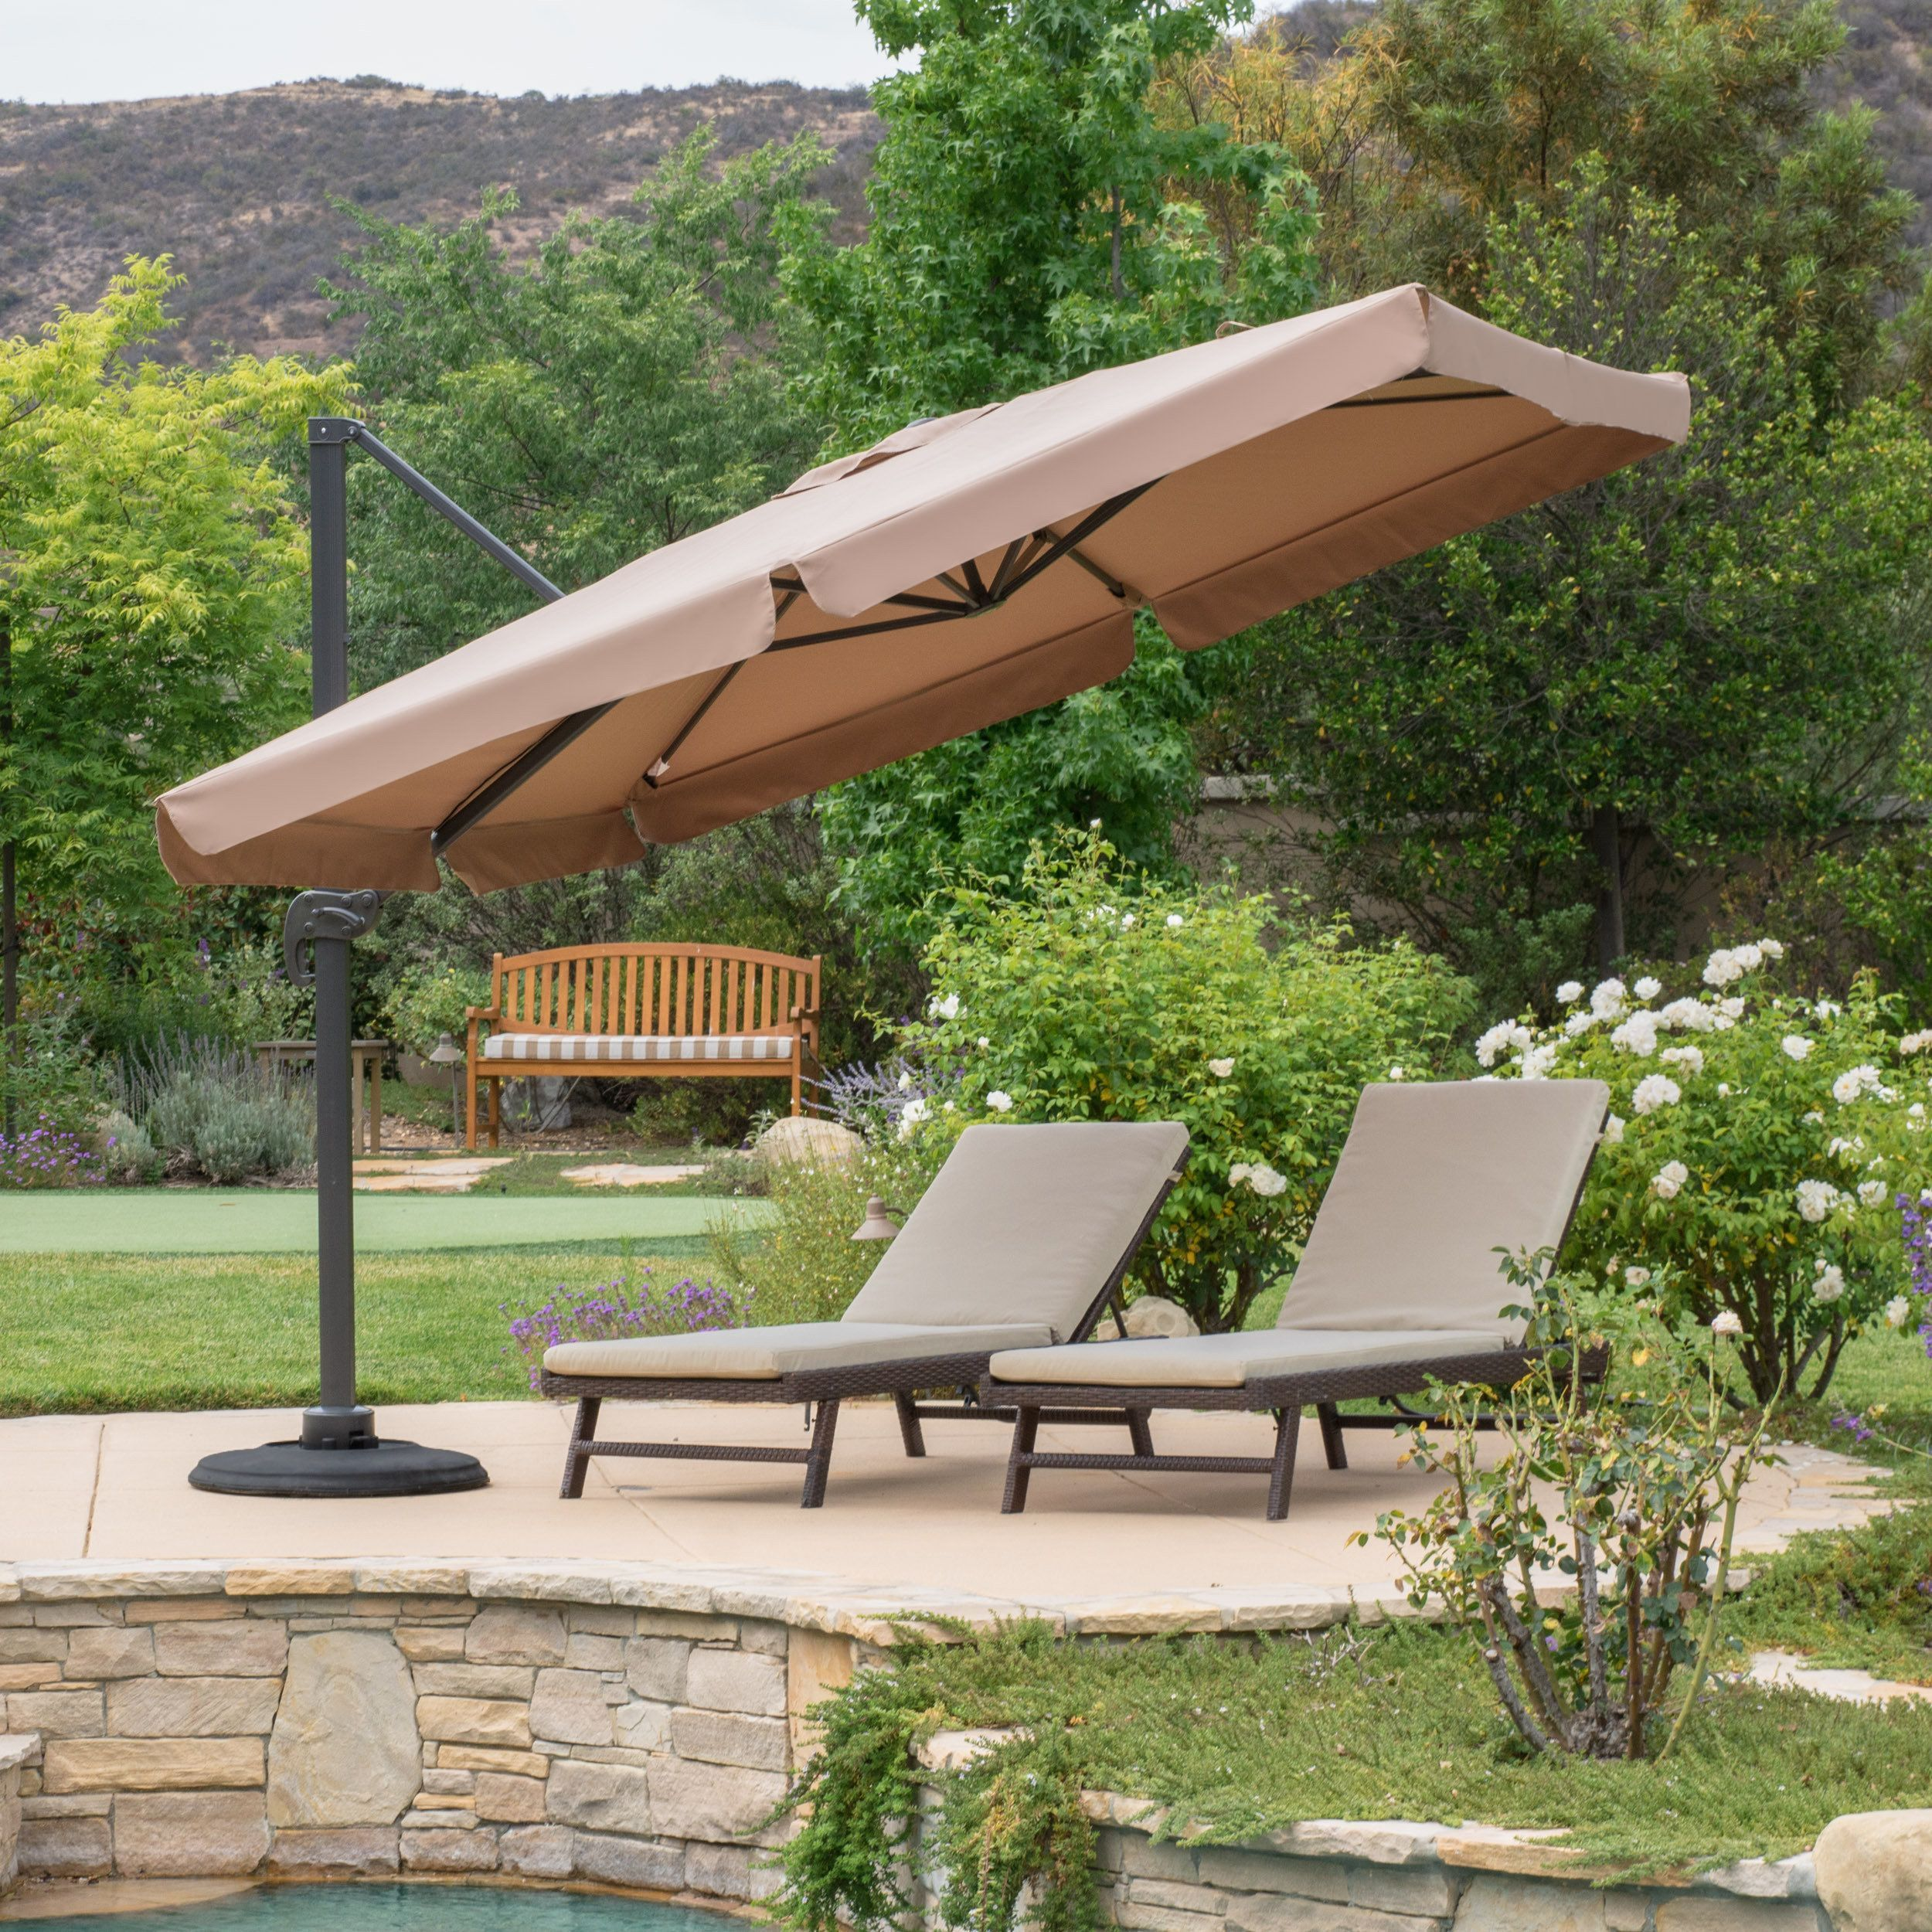 Outdoor Yuma Folding Canopy Umbrella with Base by Christopher